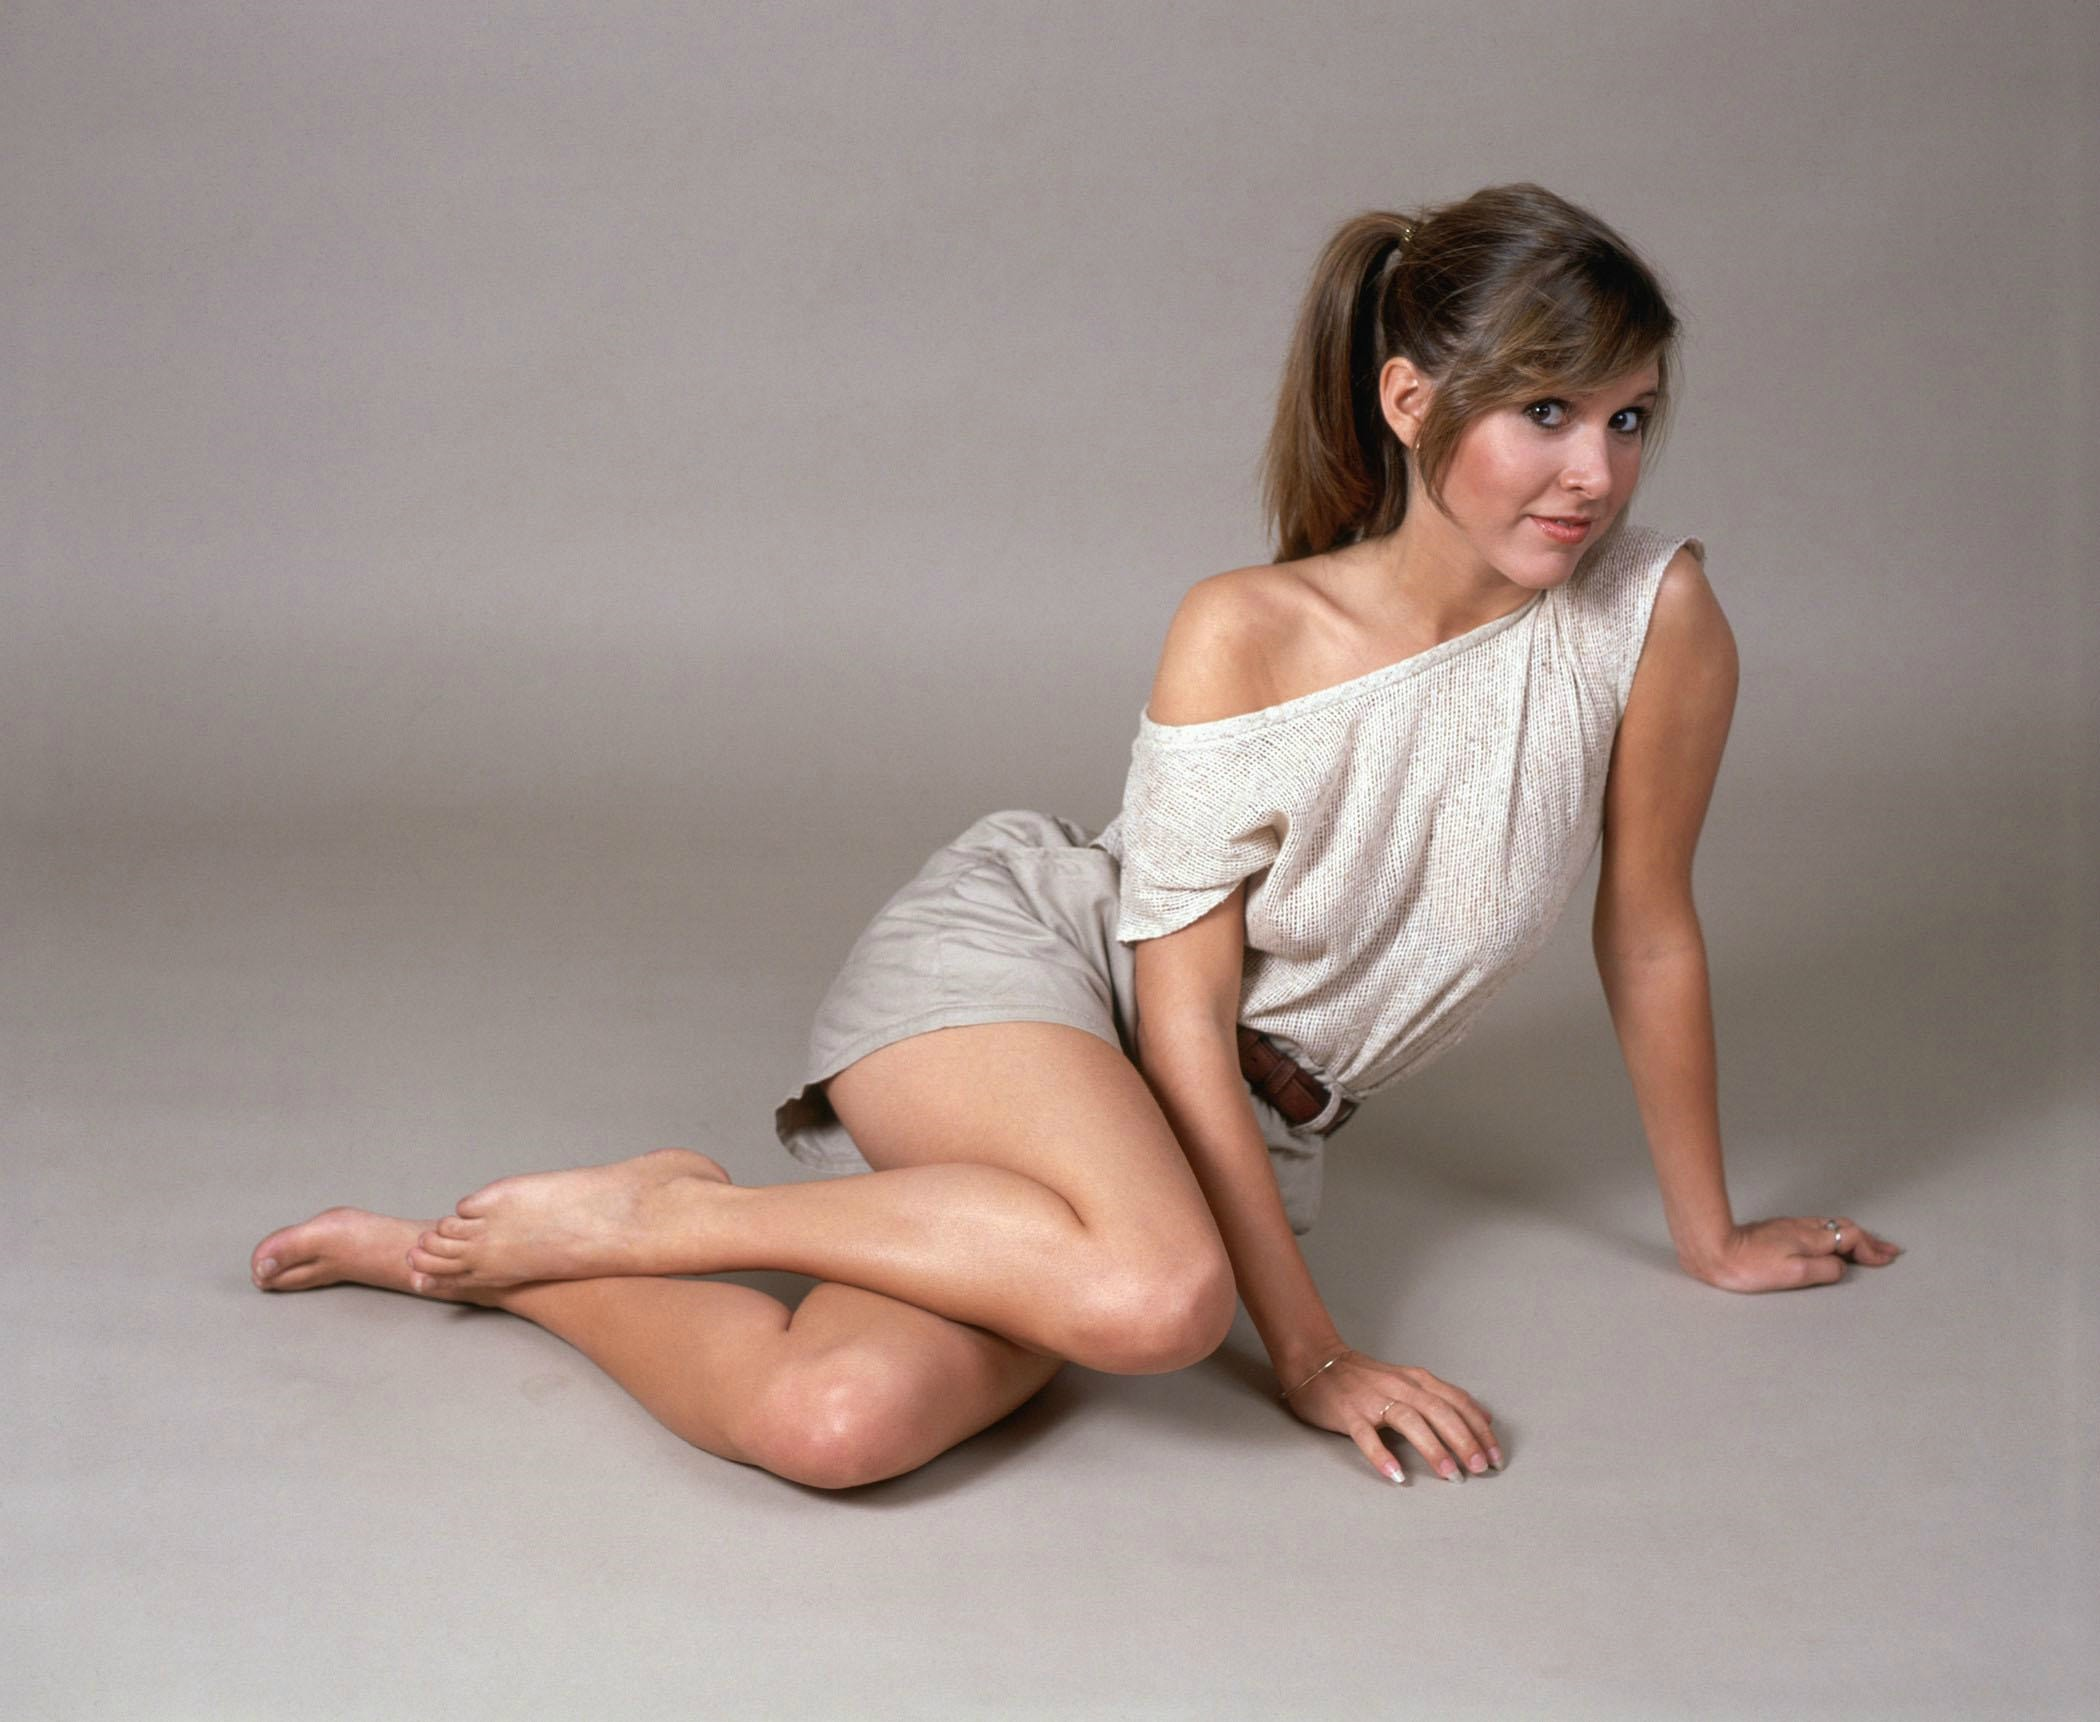 2100x1722 - Carrie Fisher Wallpapers 2